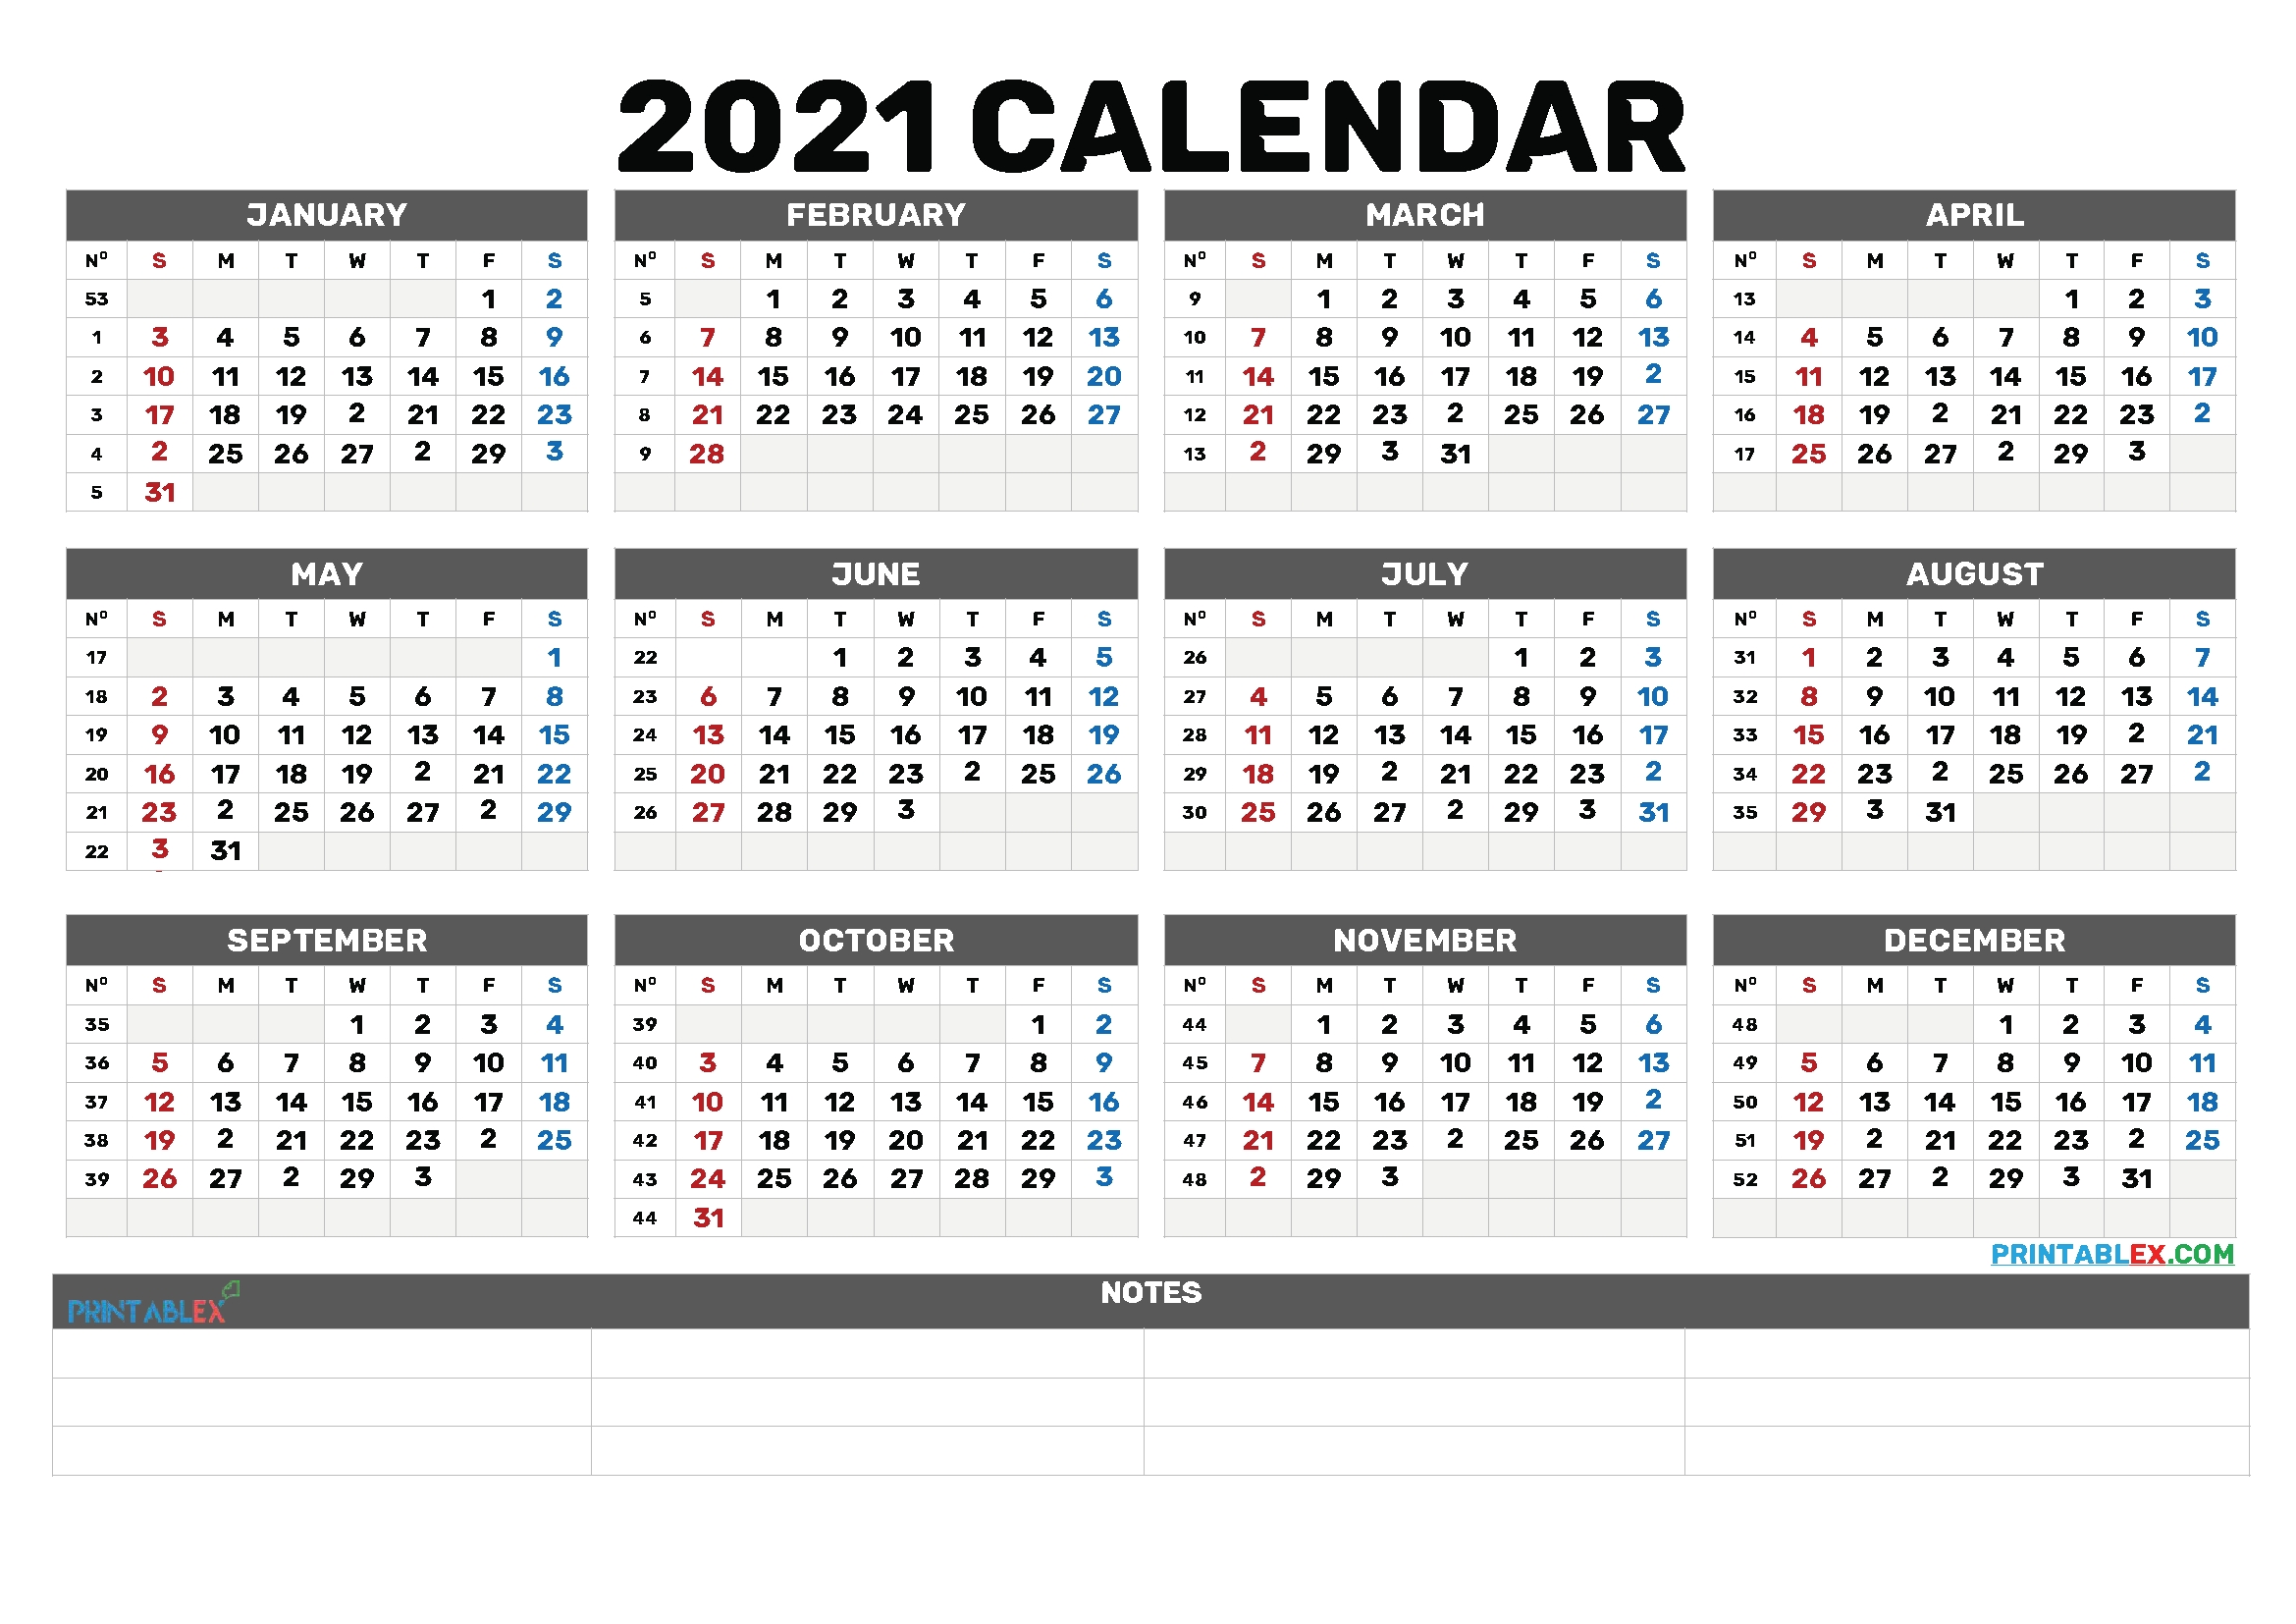 Free 2021 Yearly Calender Template : Calendar 2021 Wallpapers Wallpaper Cave : 2021 Yearly pertaining to Psd Calender In 2021